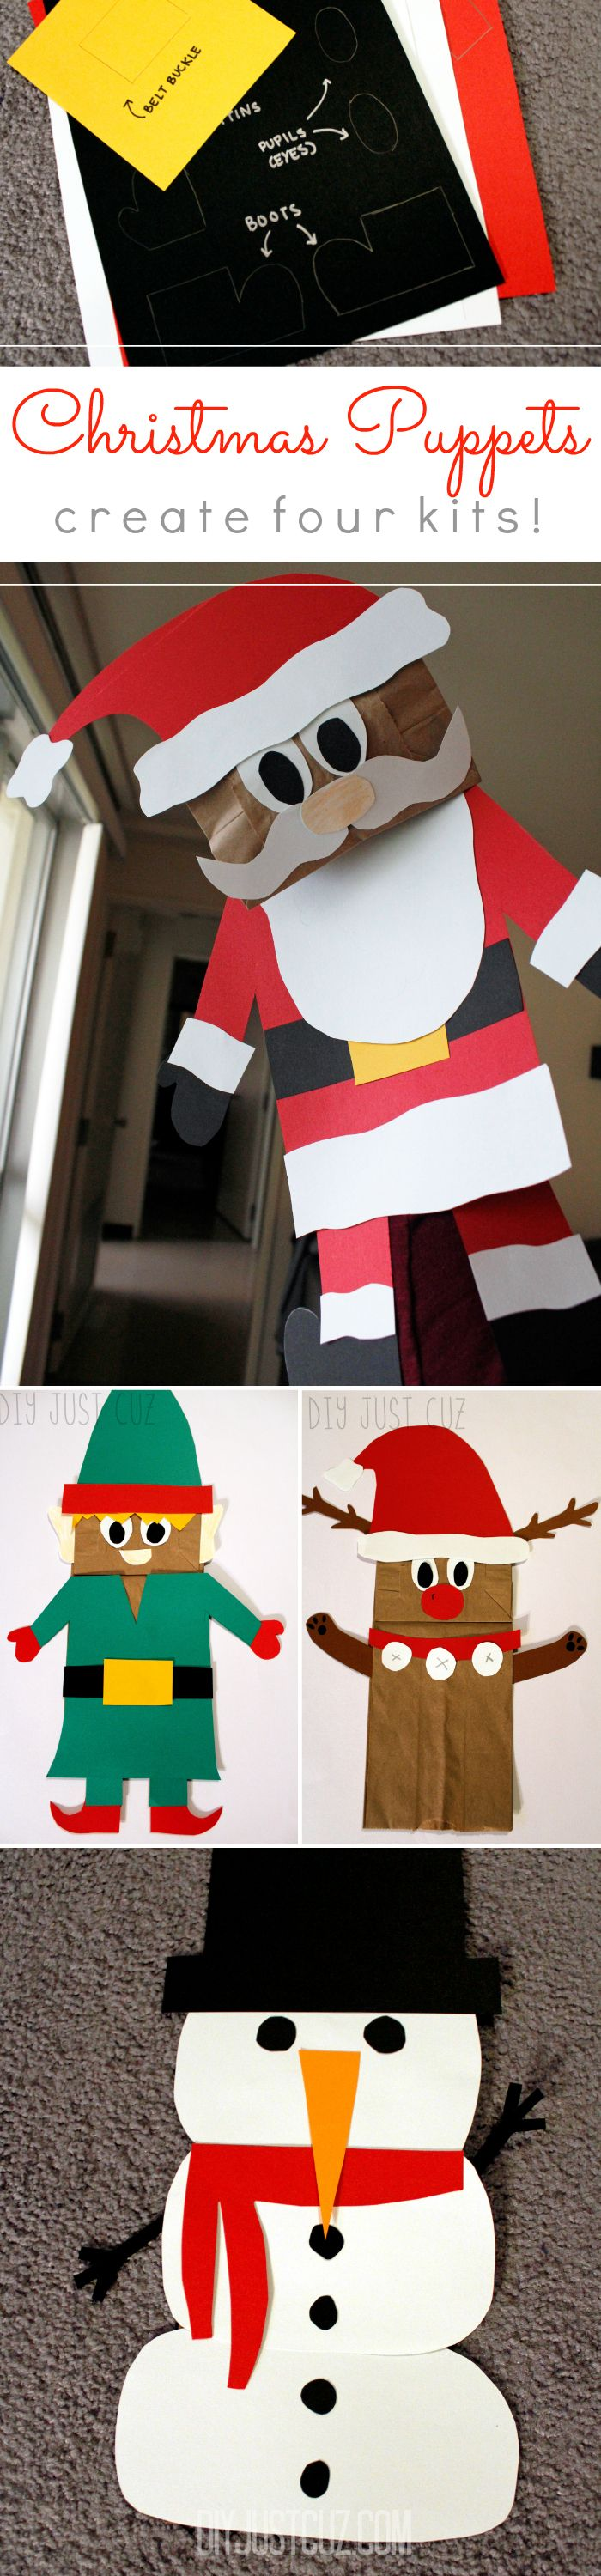 Read this step by step tutorial to create 4 unique christmas puppet kits for the little ones on your list! Create a santa puppet, elf puppet, reindeer puppet and snowman puppet! So easy & so adorable! @diyjustcuz